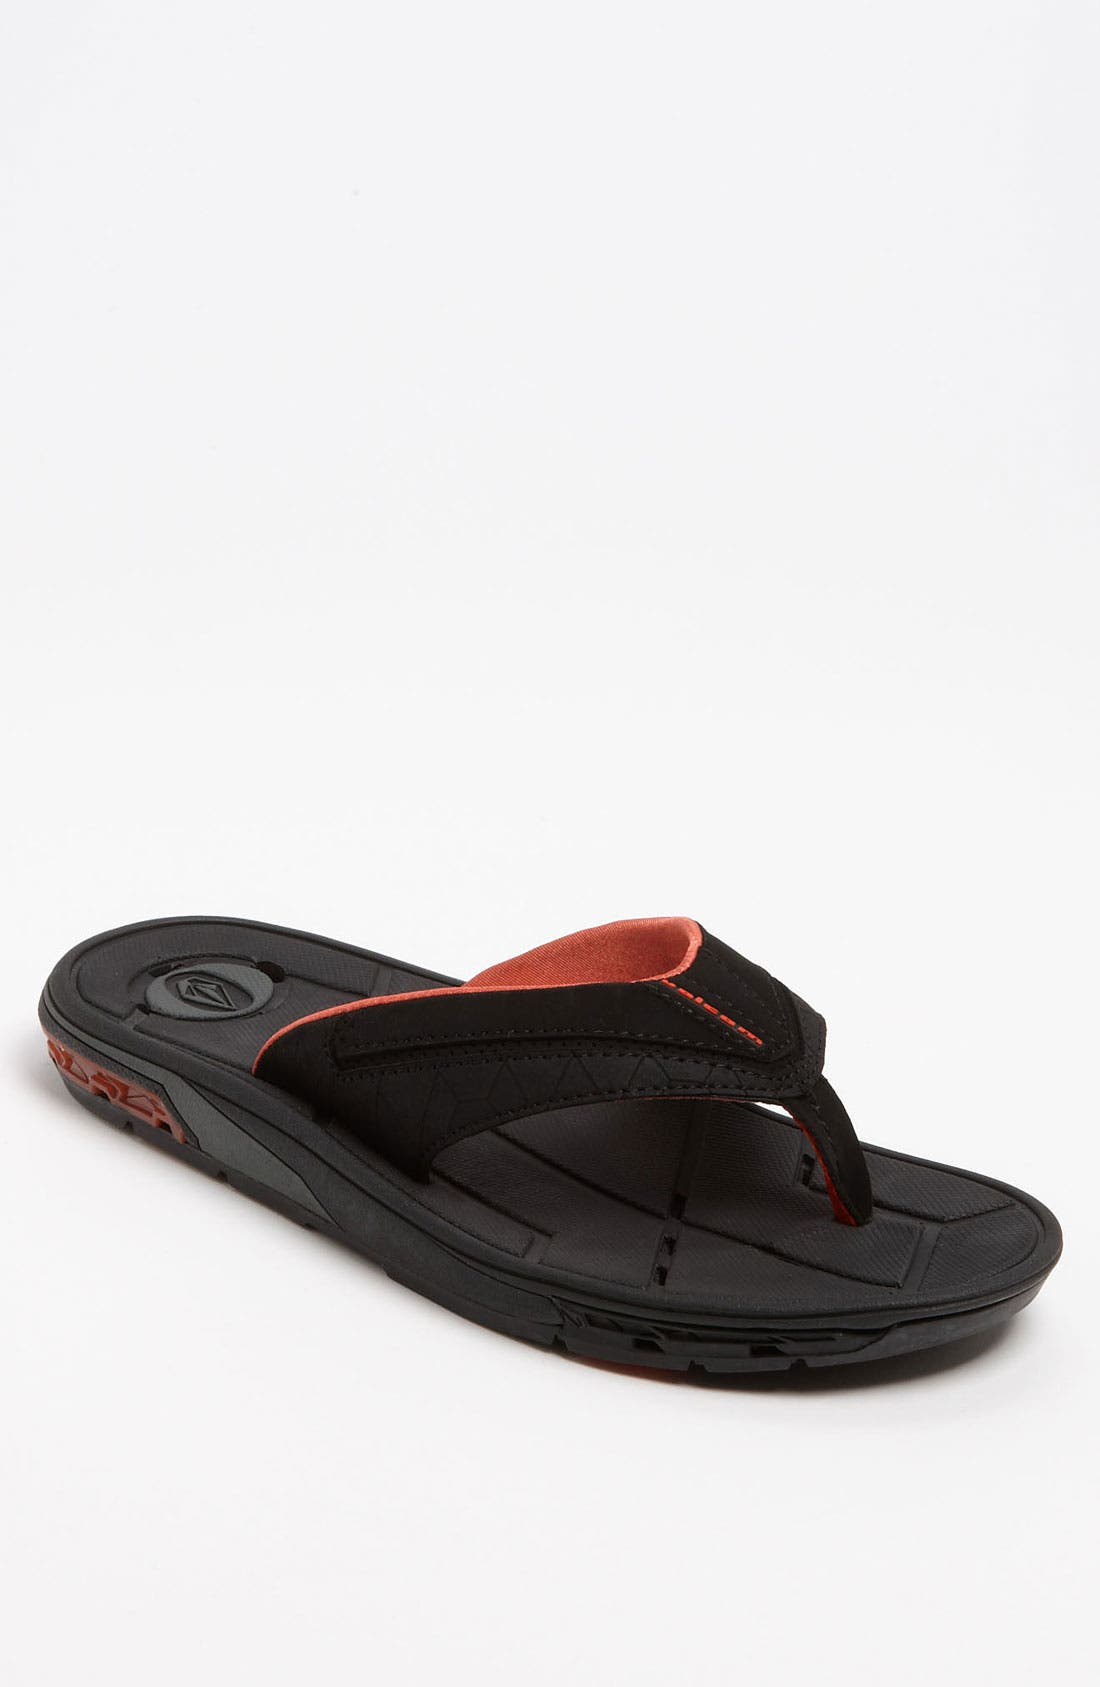 Alternate Image 1 Selected - Volcom 'Creedlers - Main Drain' Flip Flop (Online Only)